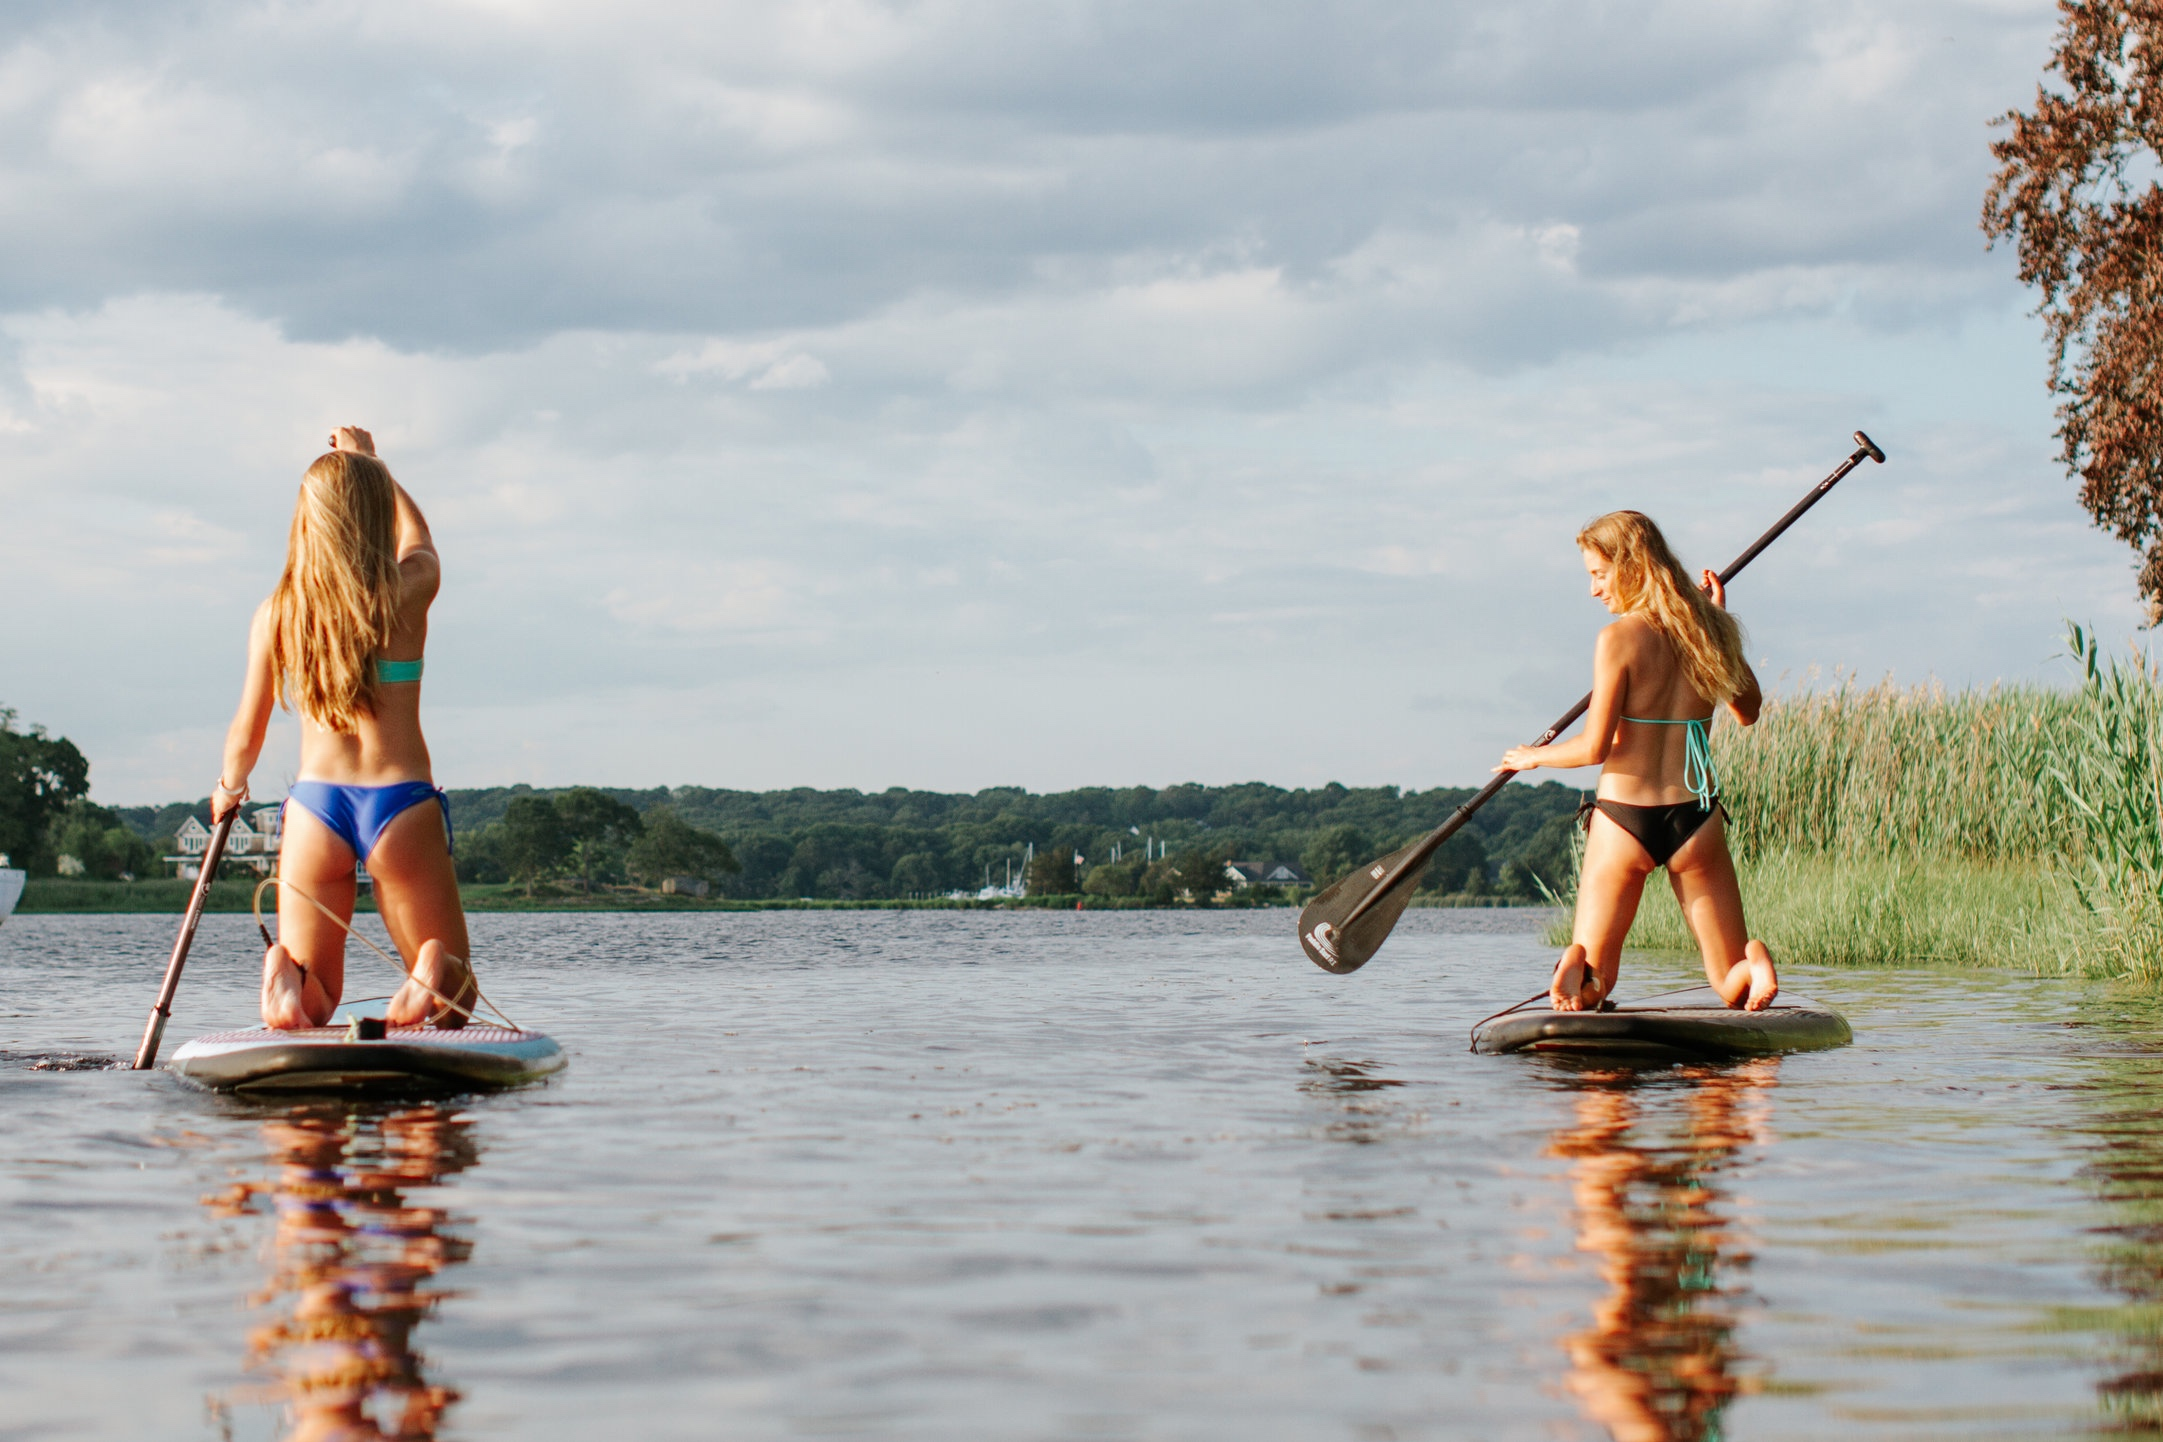 MEMBERSHIP - Unlimited Stand Up Paddling all Summer long! Single & Family options.